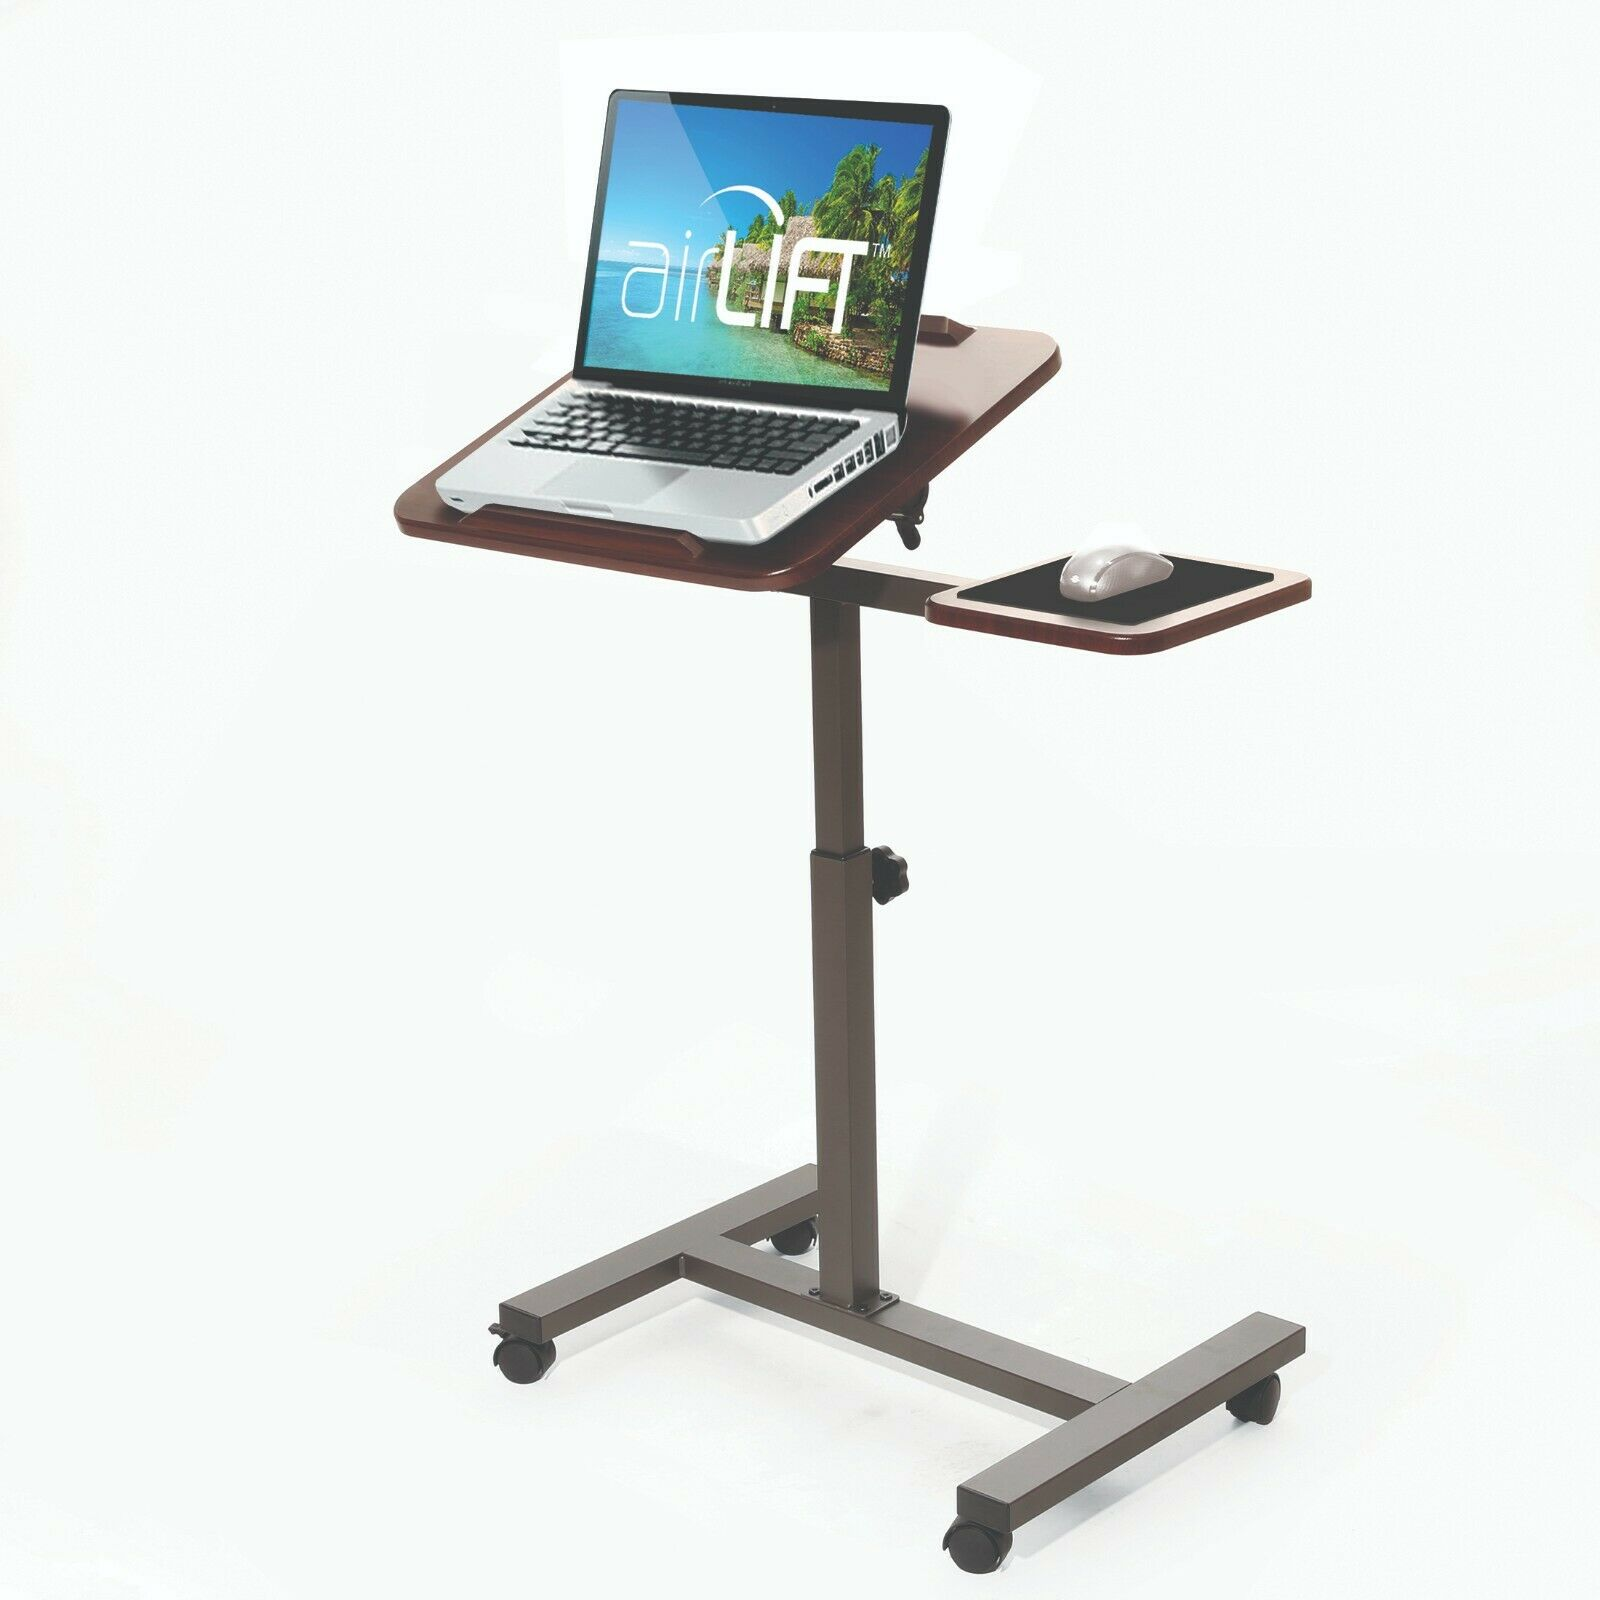 SEVILLE CLASSICS AIRLIFT TILTING SIT-STAND COMPUTER DESK CART WITH SIDE TABLE Furniture